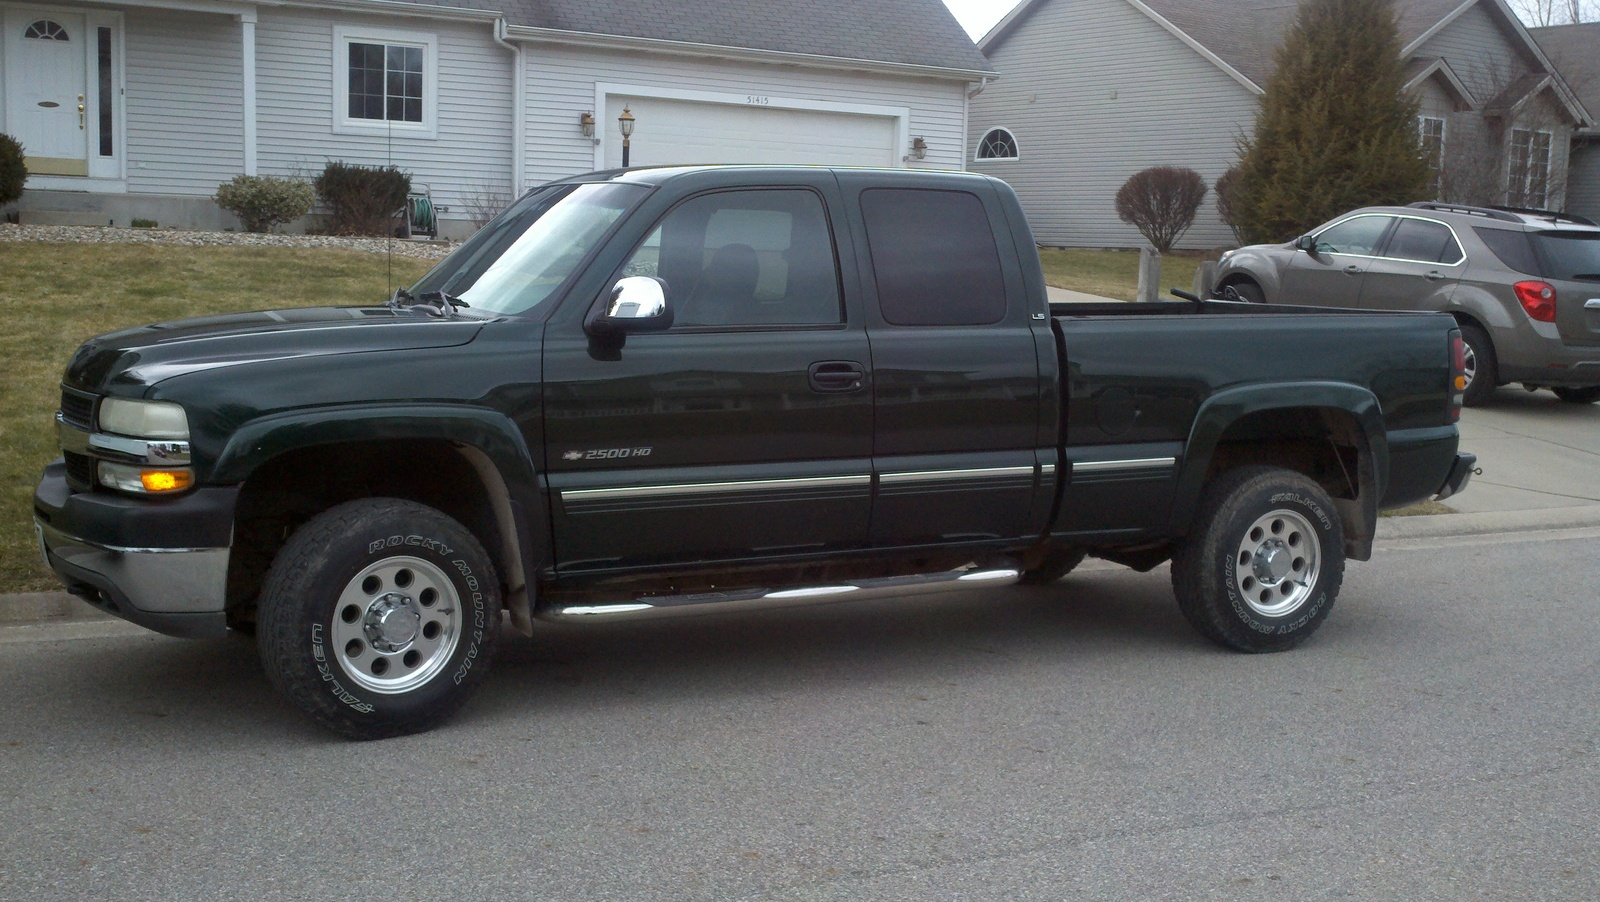 2008 Chevy Malibu Used Picture of 2001 Chevrolet Silverado 2500HD LT Extended Cab 4WD ...